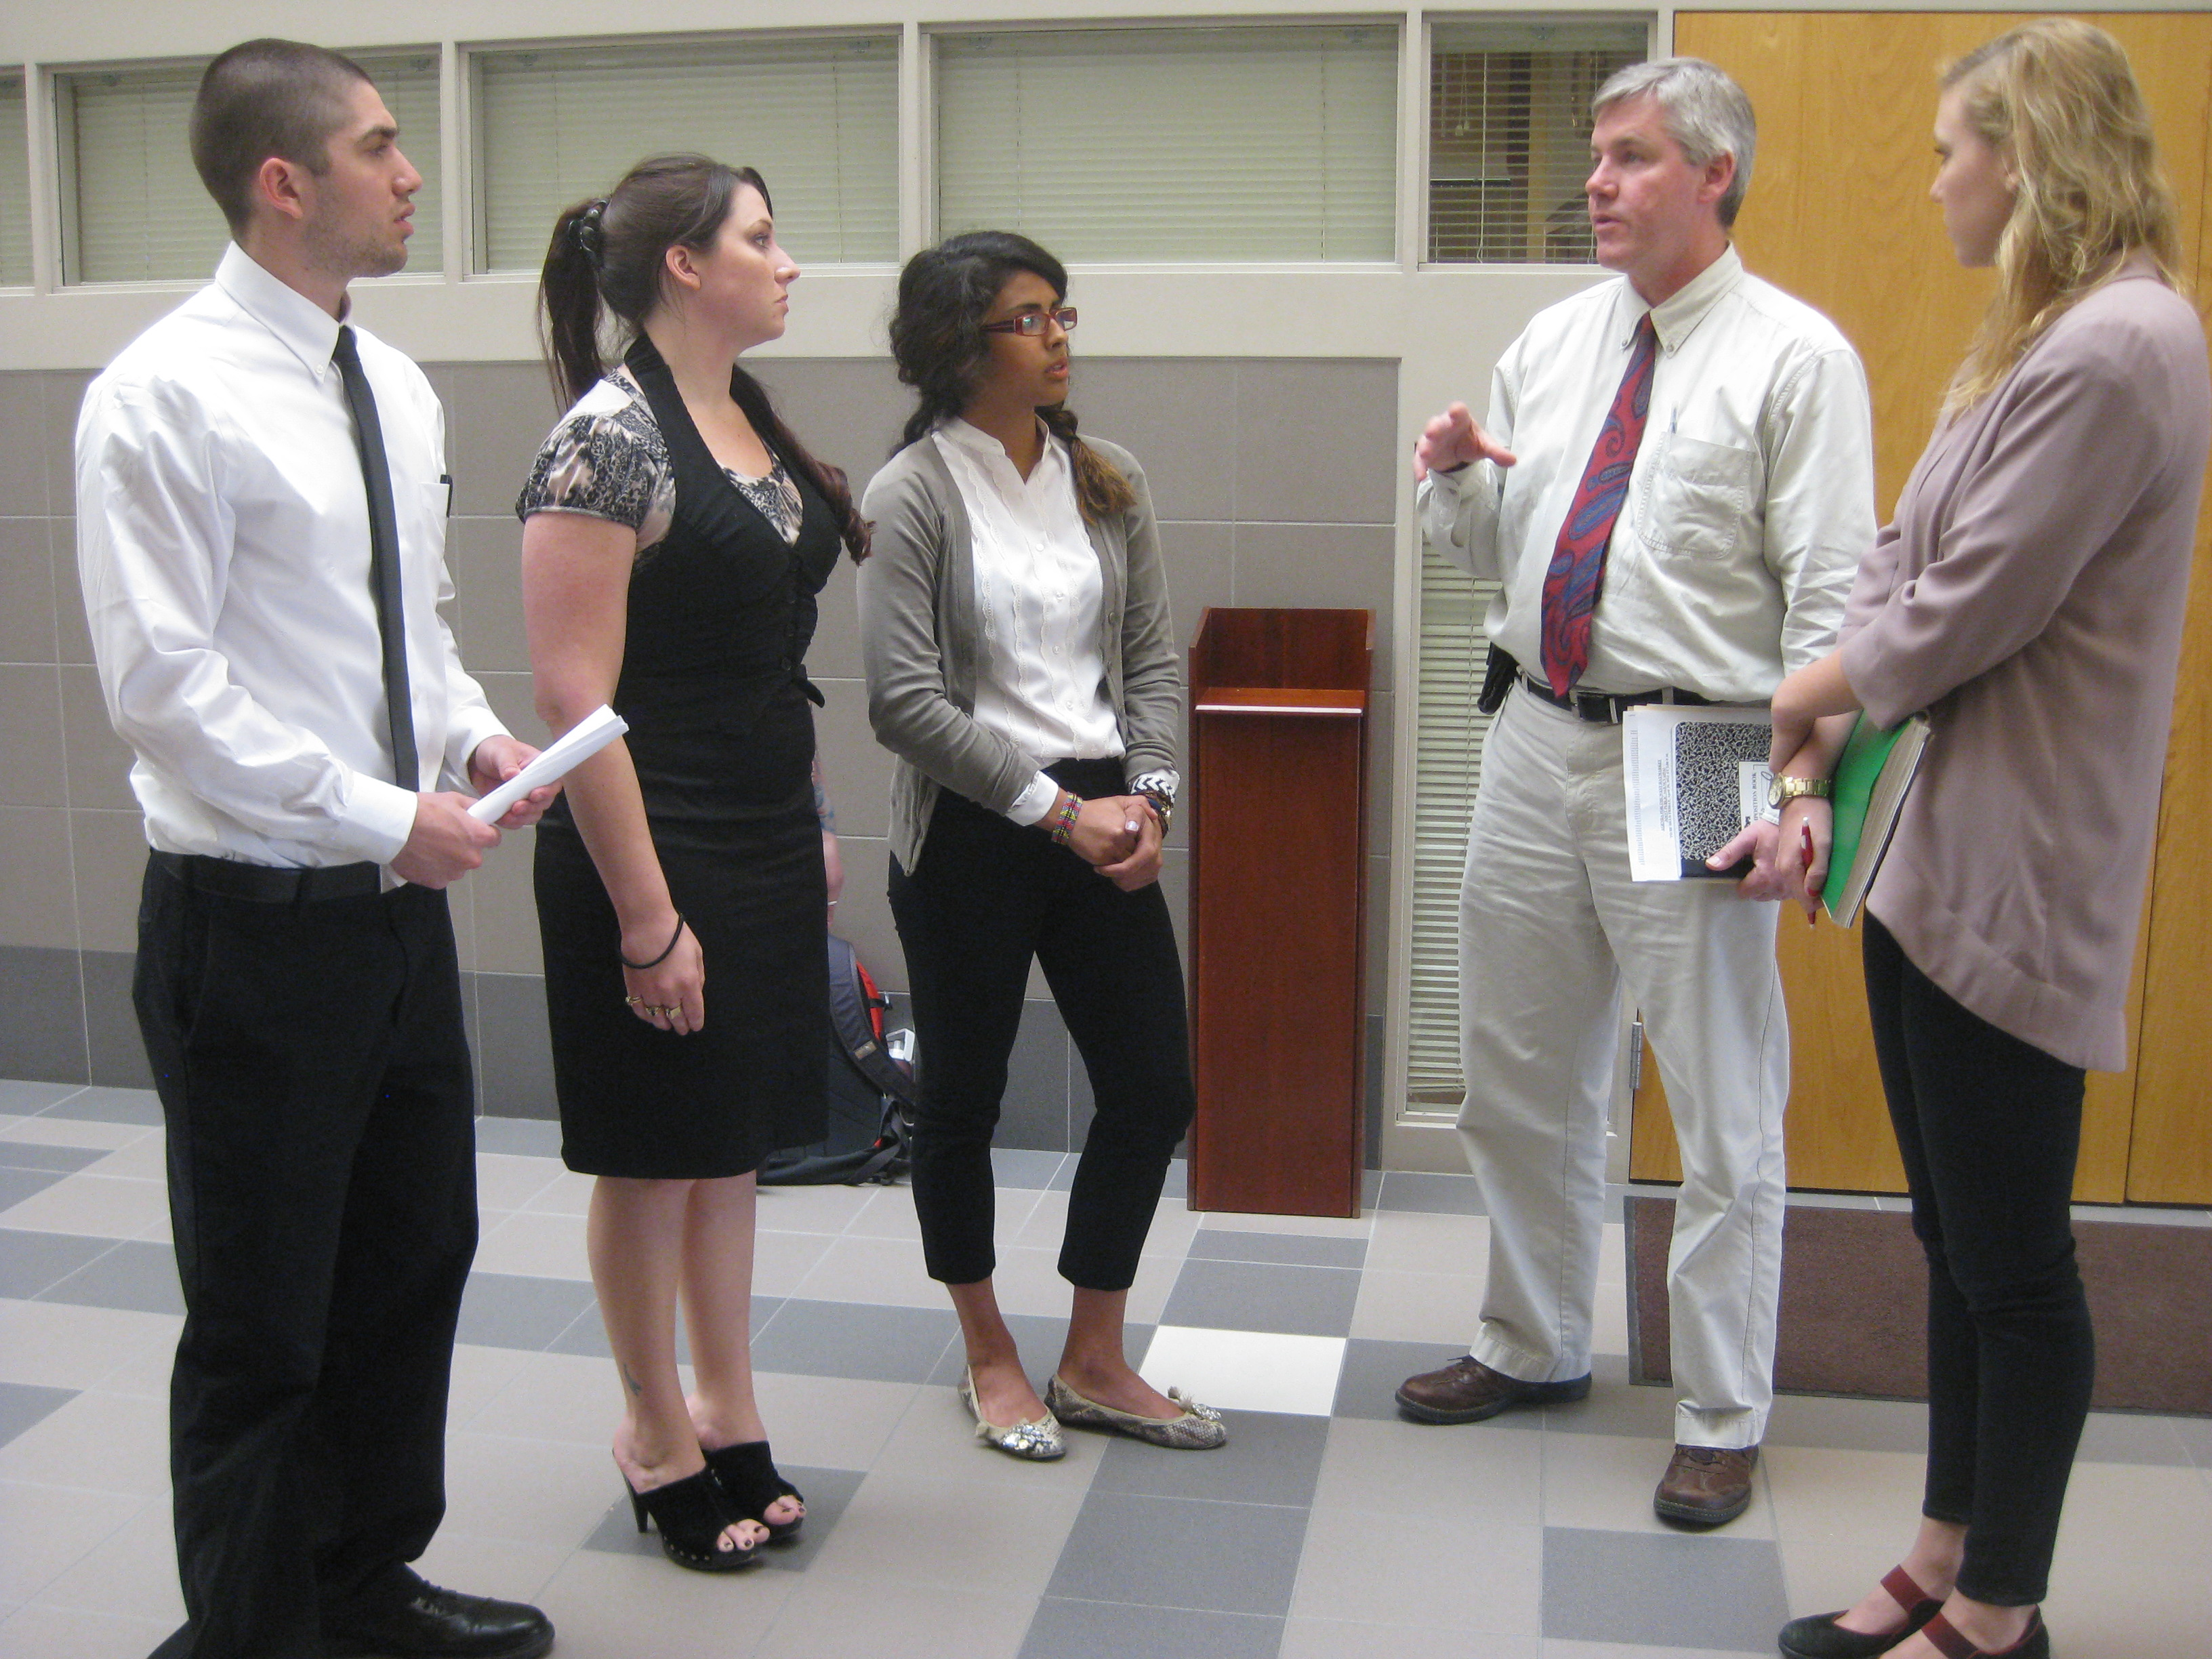 From left, students Tom Batter, Jesy Hansen and Kiana Mathew discussed sustainability with Milo Mumgaard and Emily McKeone from the mayor's office.